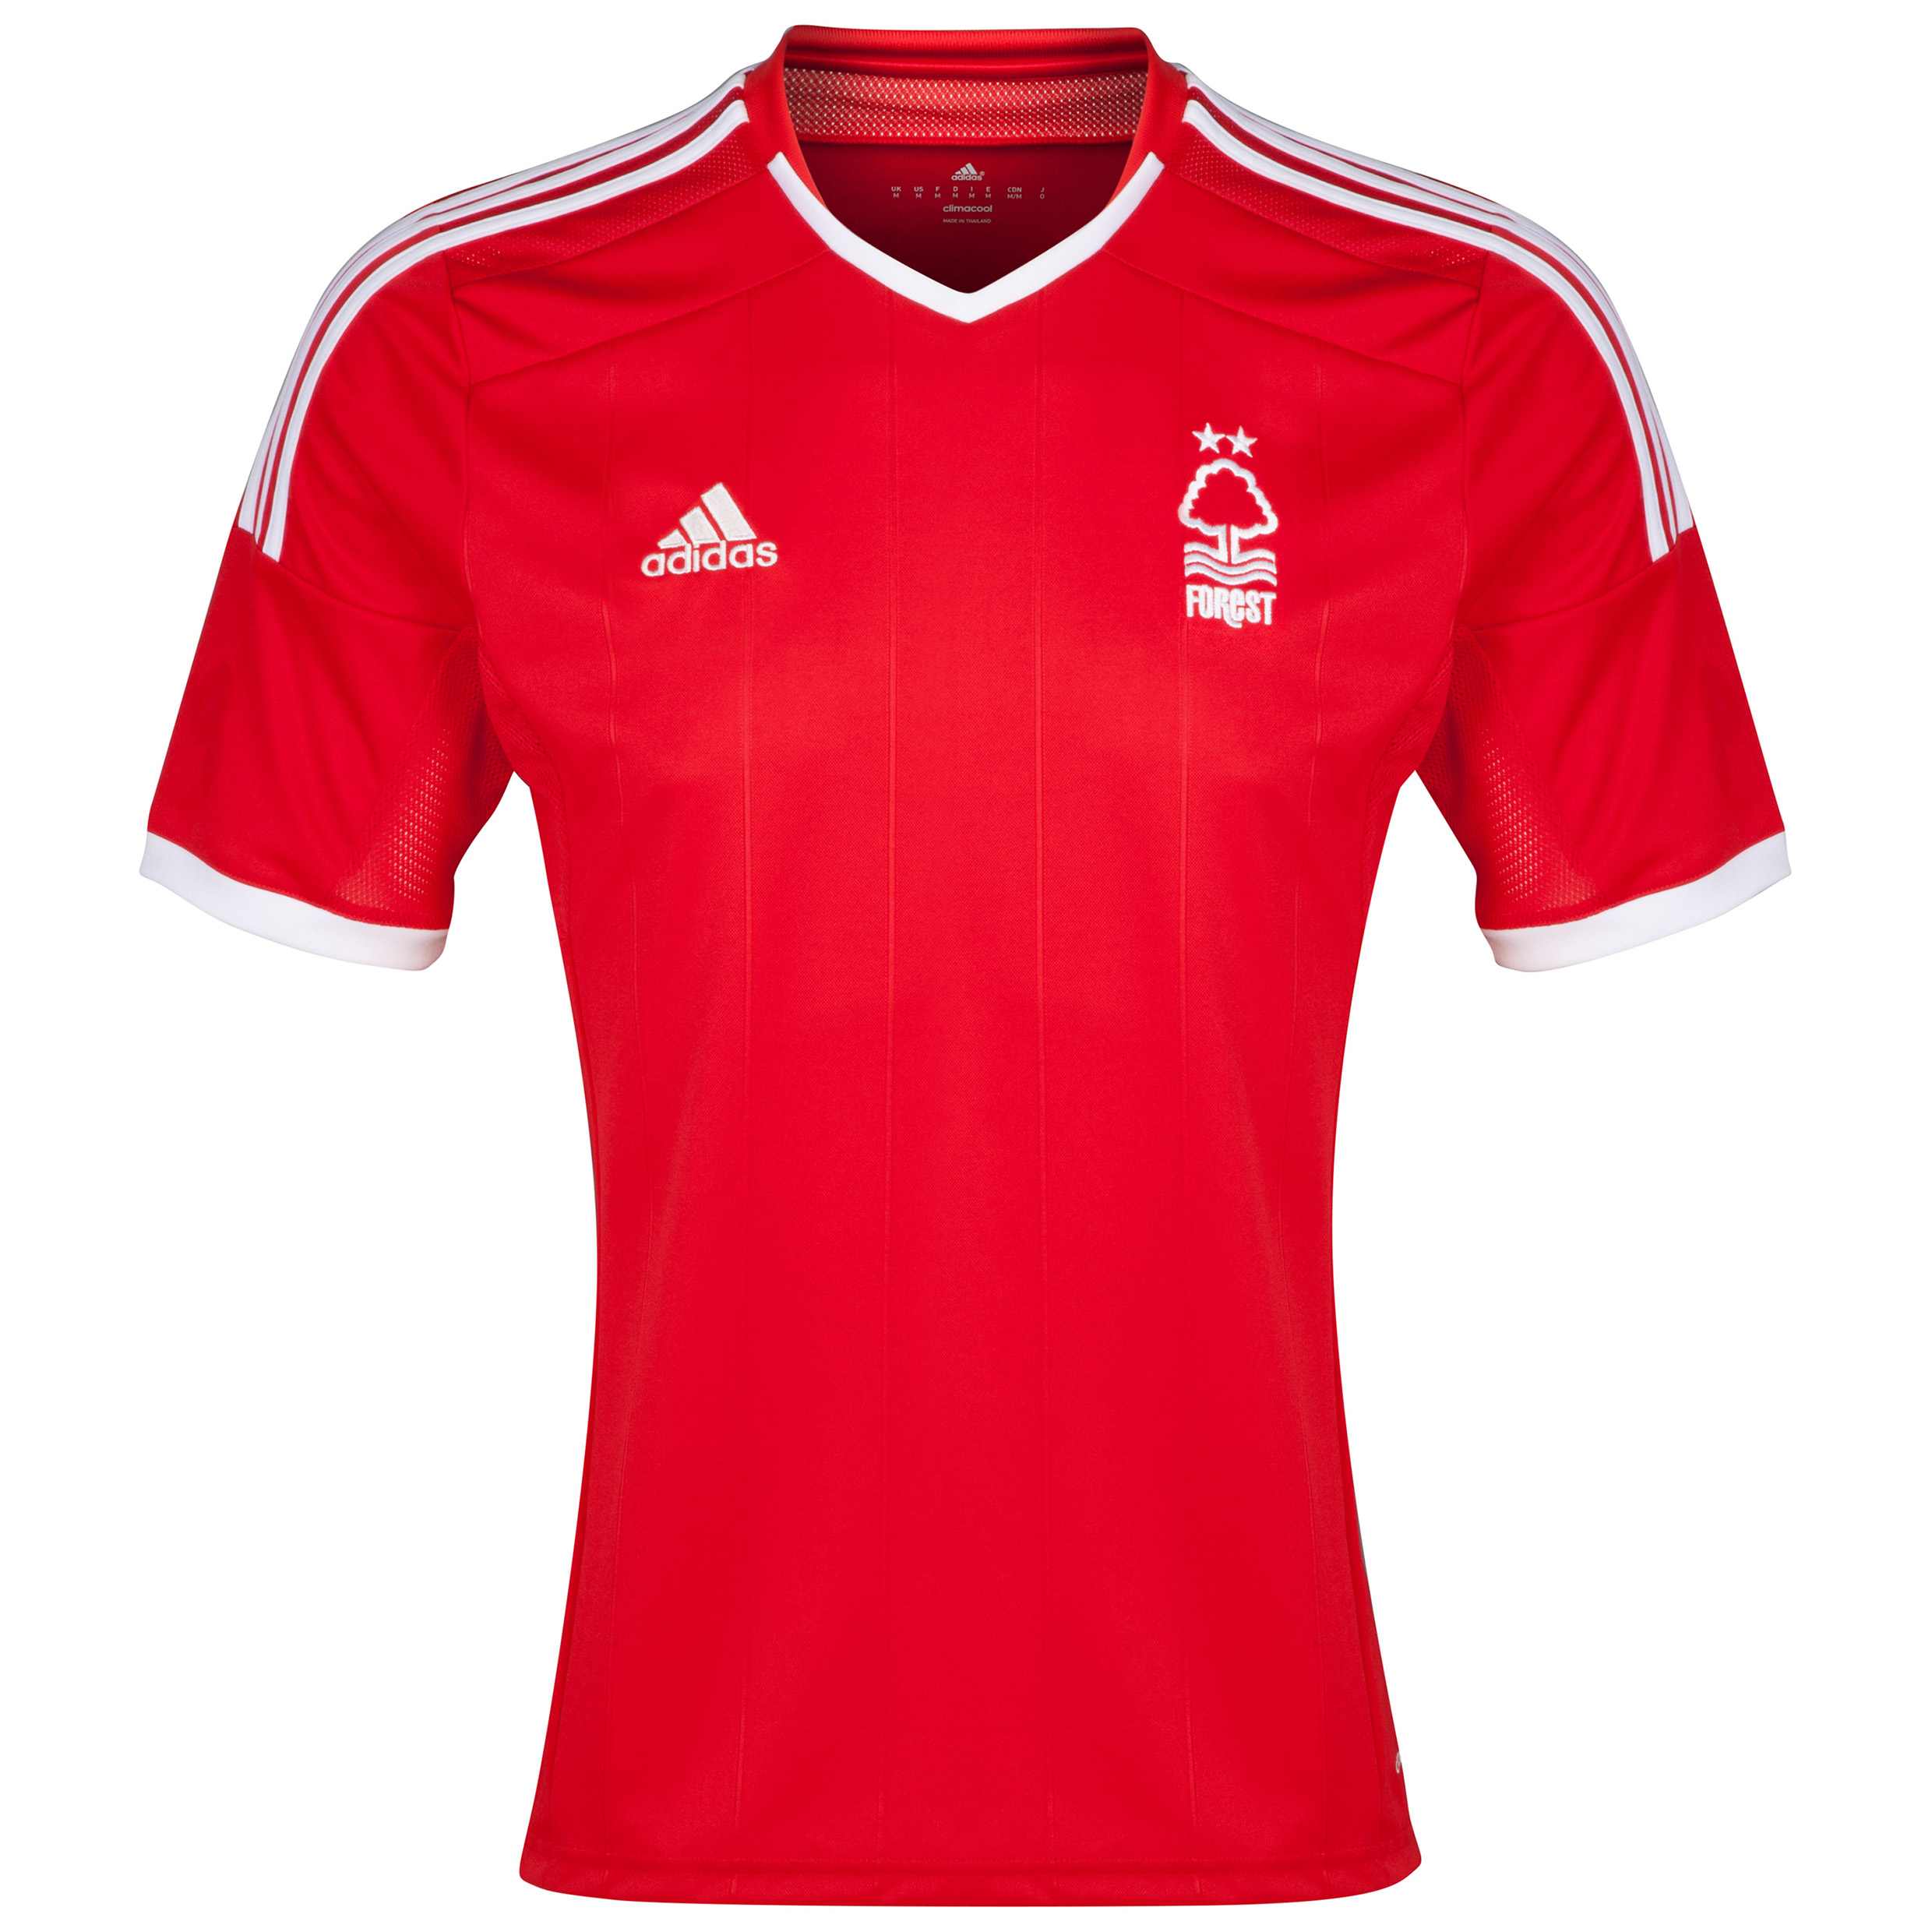 Nottingham Forest Home Shirt 2014/15 Red